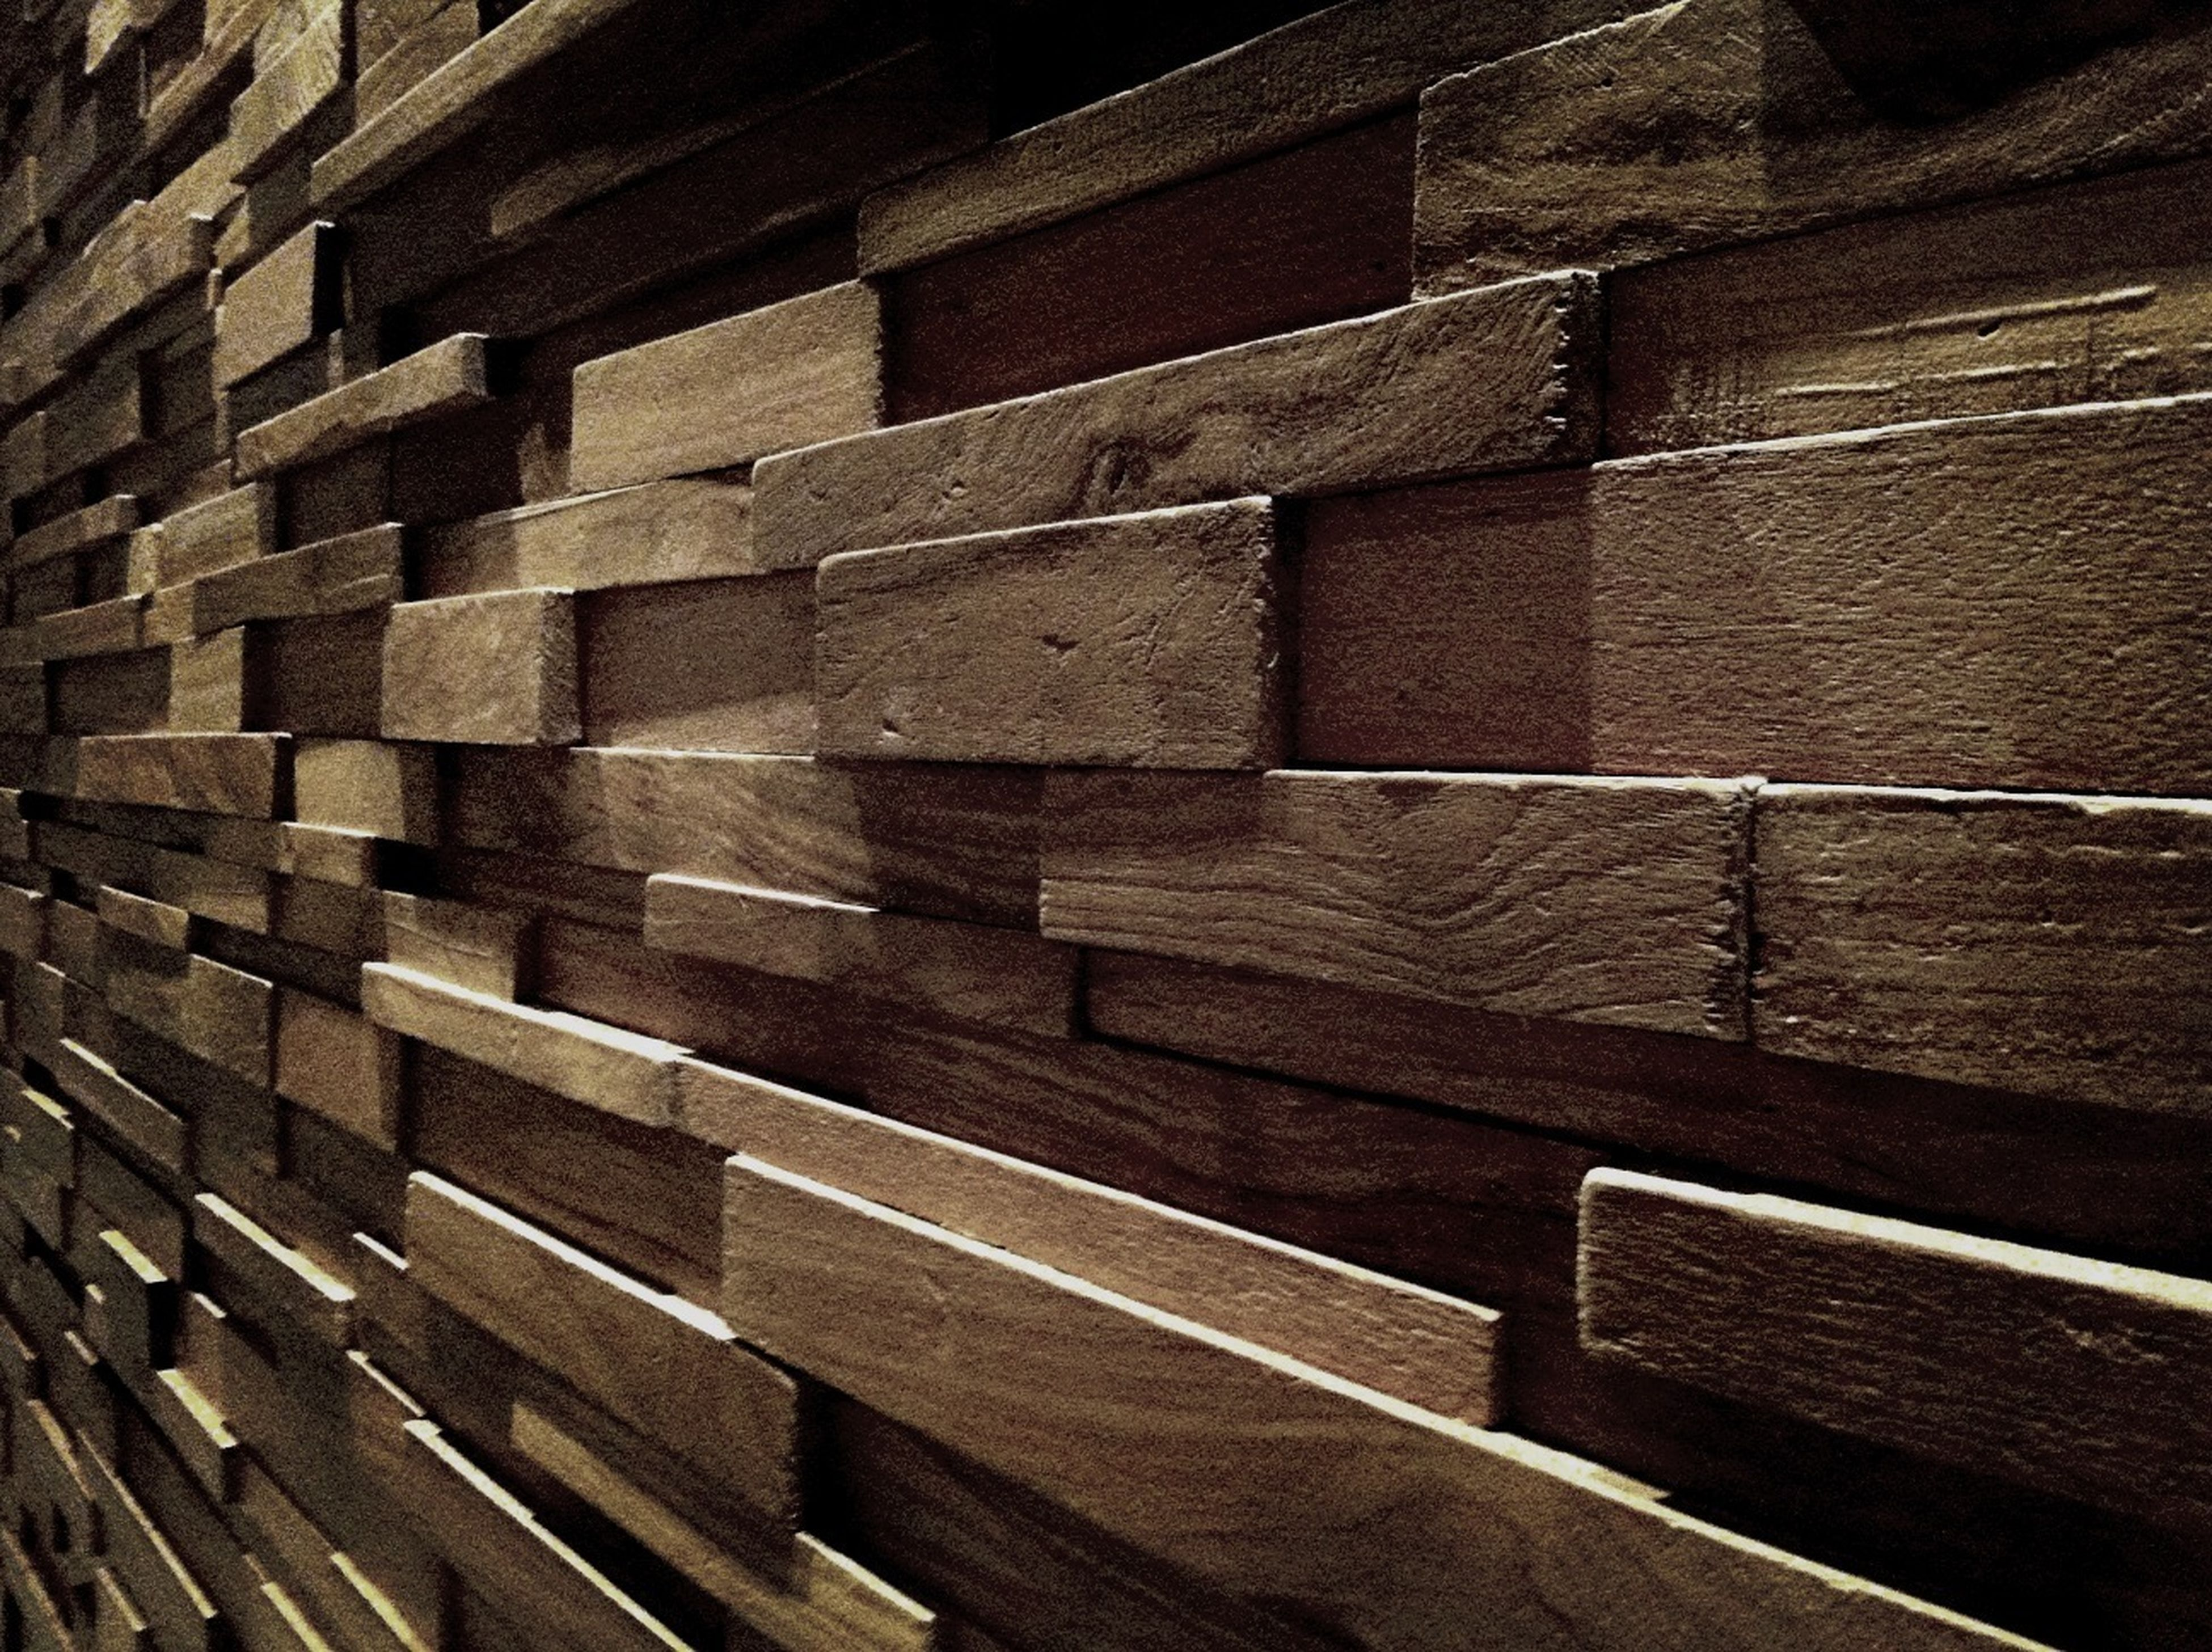 wood - material, backgrounds, full frame, textured, pattern, large group of objects, wooden, high angle view, in a row, abundance, stack, wood, repetition, no people, outdoors, day, wall - building feature, sunlight, close-up, brick wall